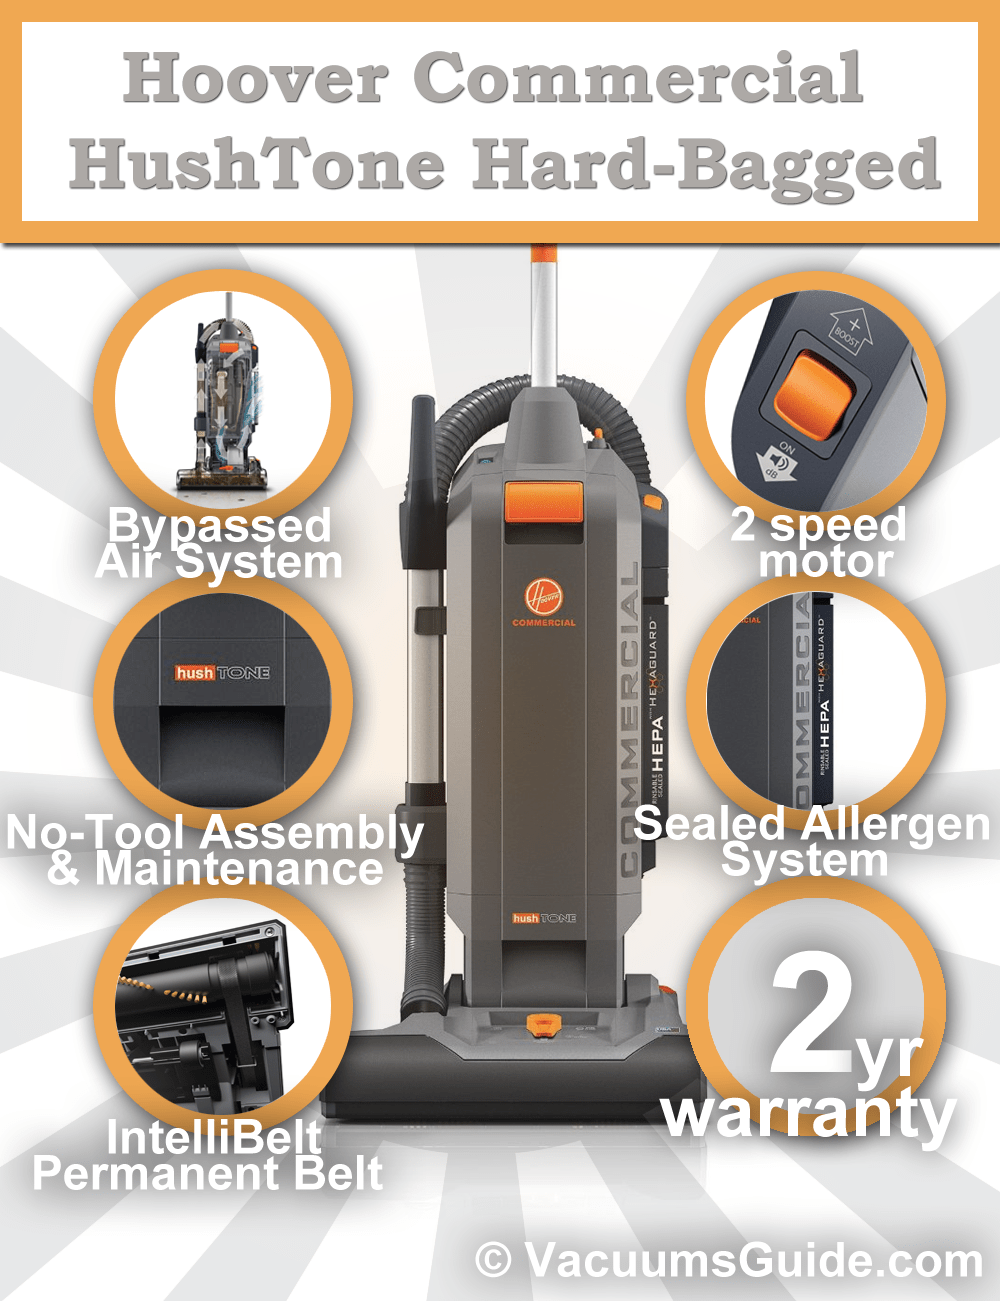 Hoover Commercial HushTone Hard-Bagged features